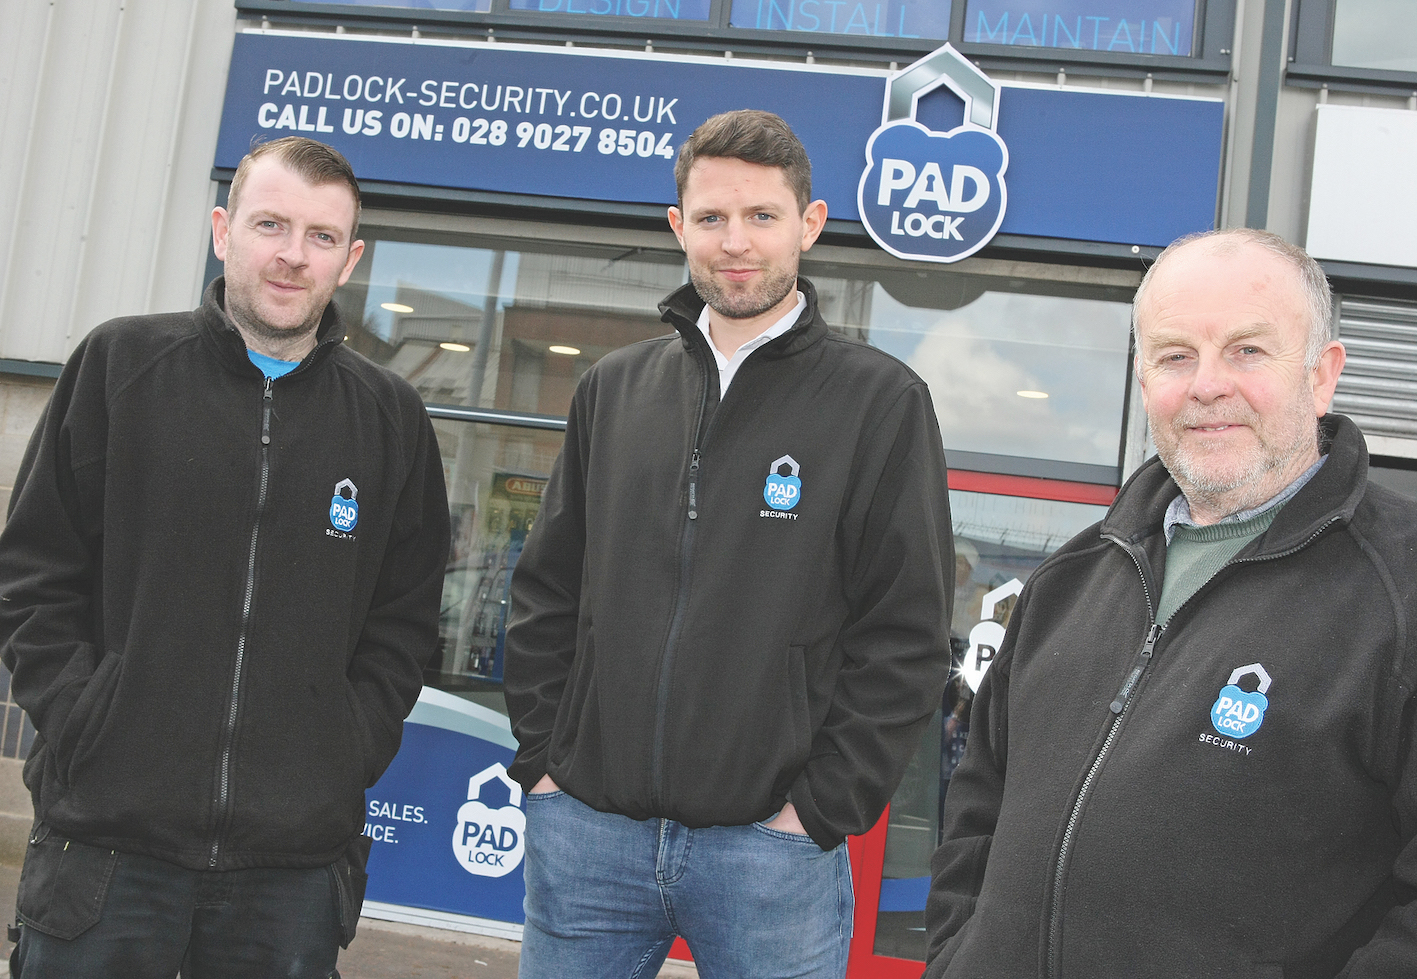 SMALL BUSINESSES FALLING THROUGH CRACKS: Pictured in 2018 at Padlock Security were locksmiths Liam McShane, James Ferrin and Frank Cahill.